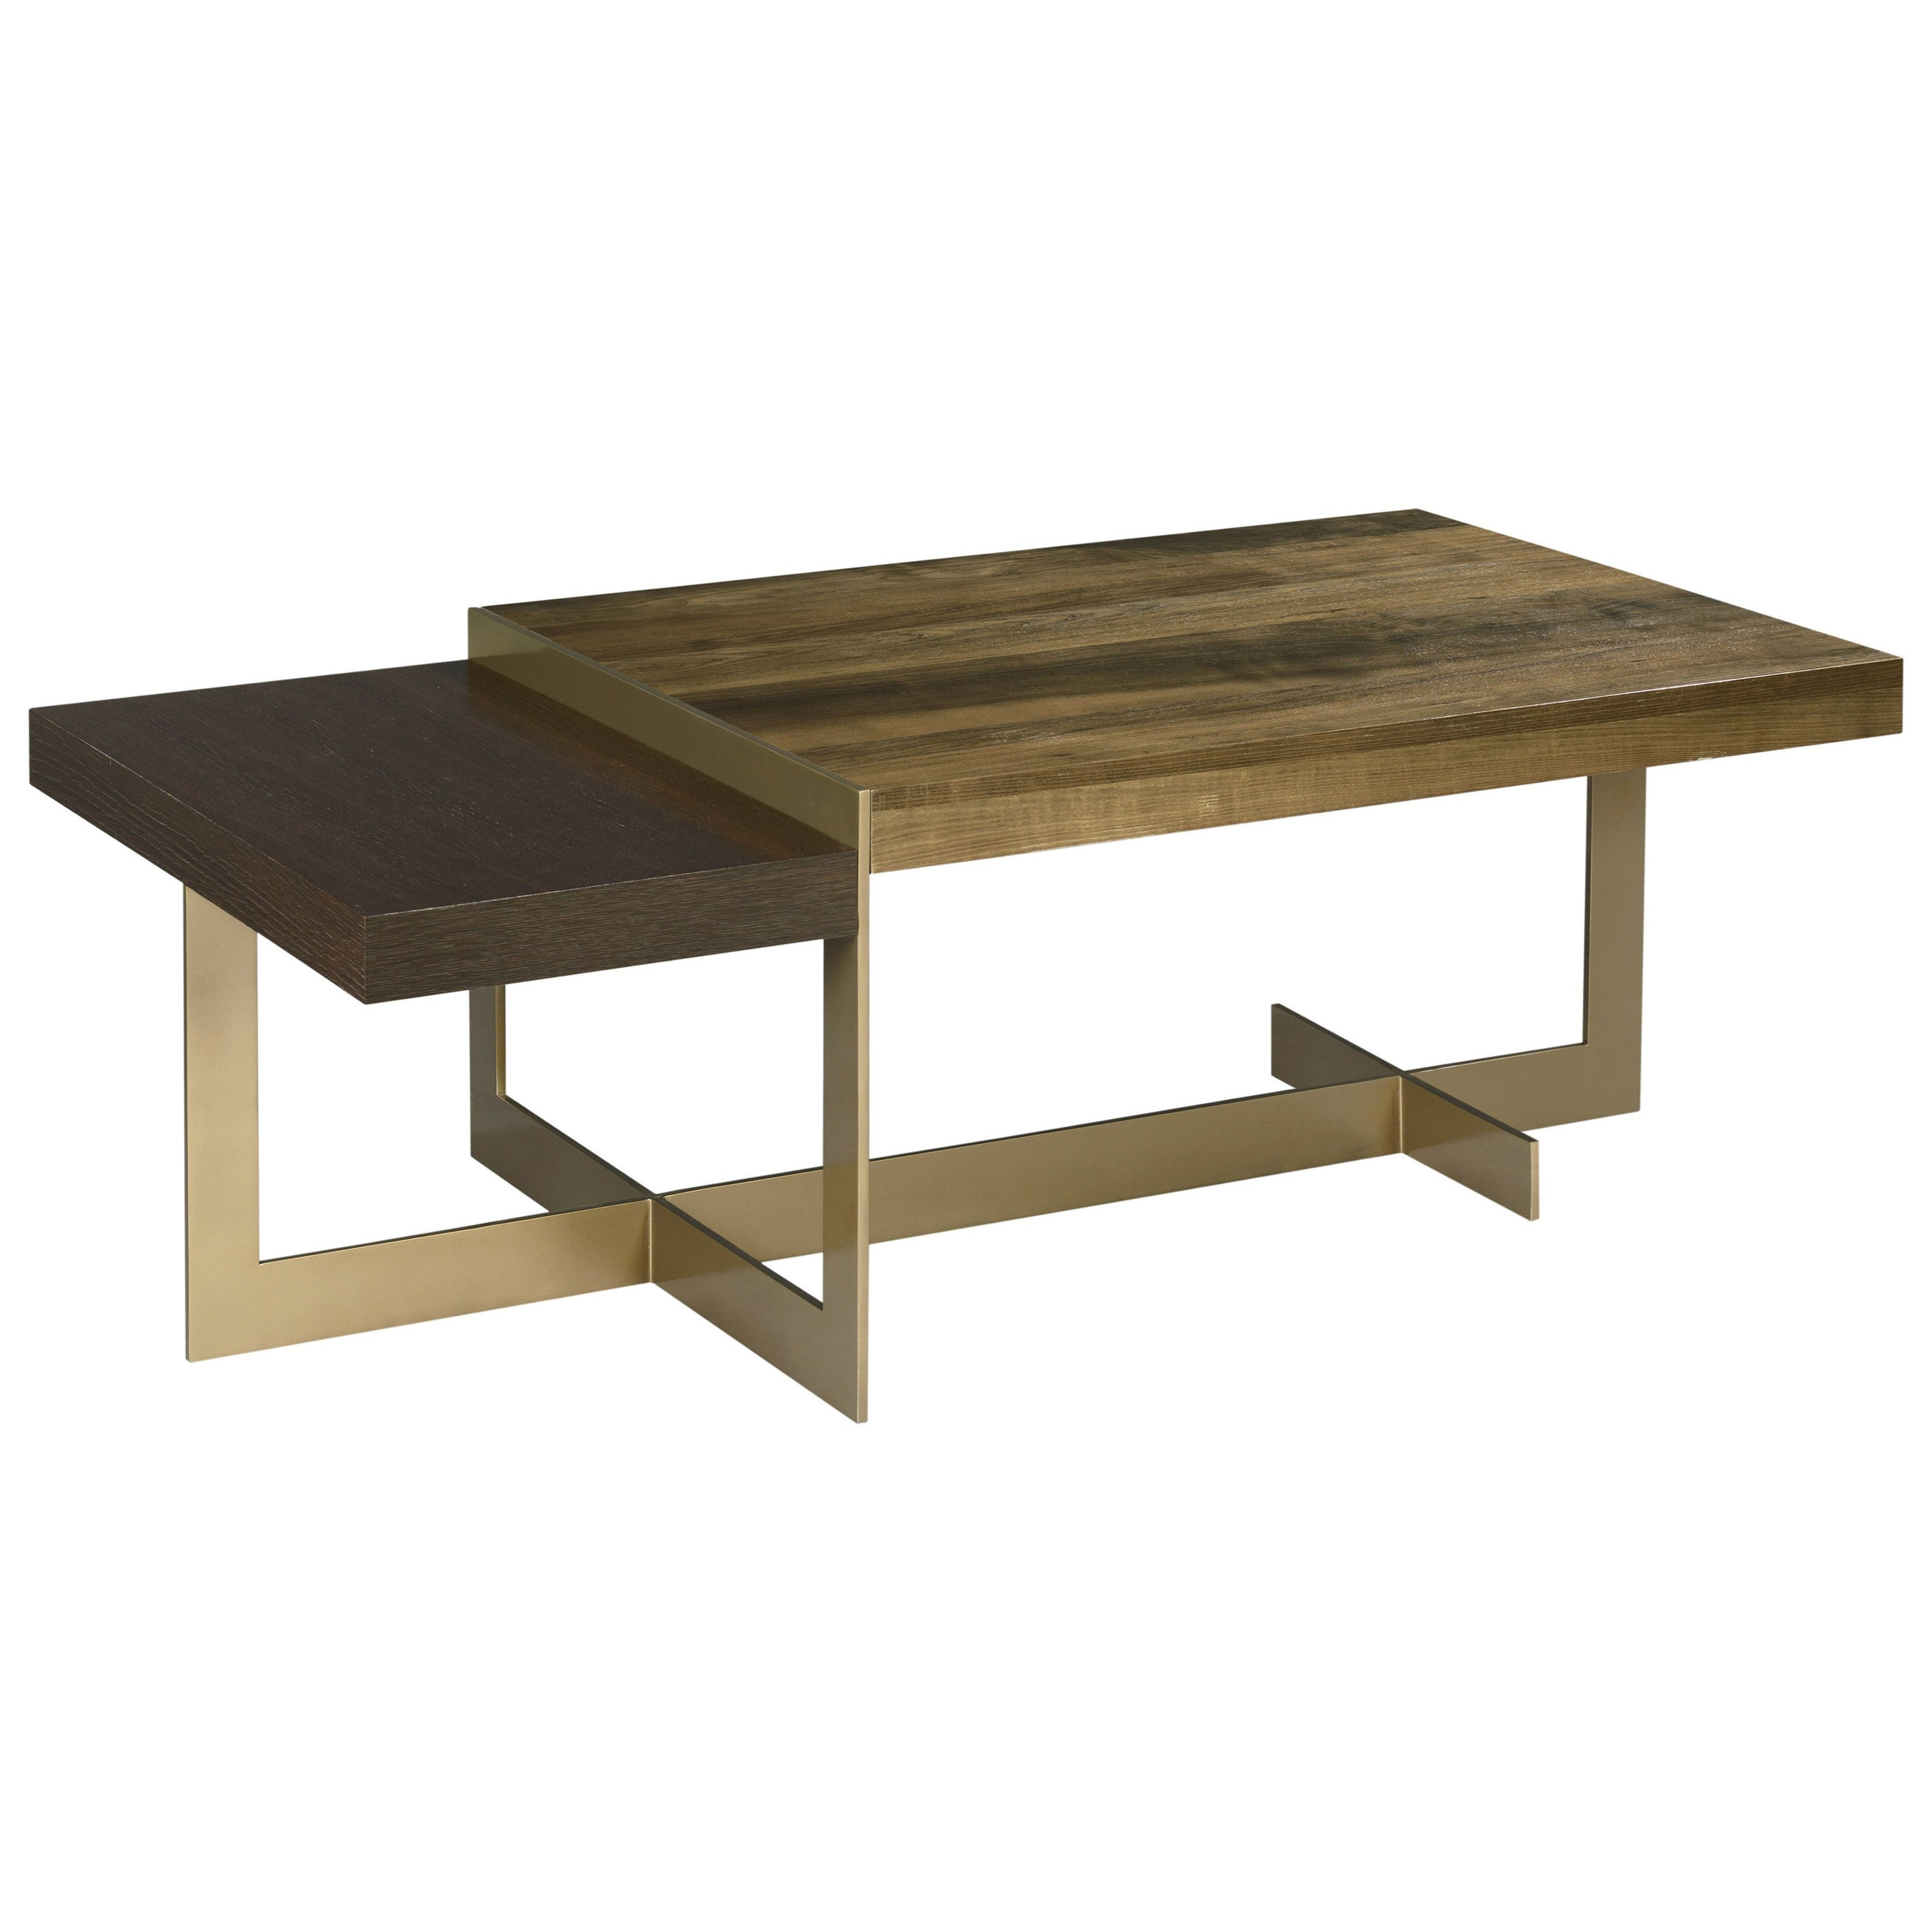 Ad Modern Organics Ogden Rectangular Cocktail Table by American Drew at Alison Craig Home Furnishings